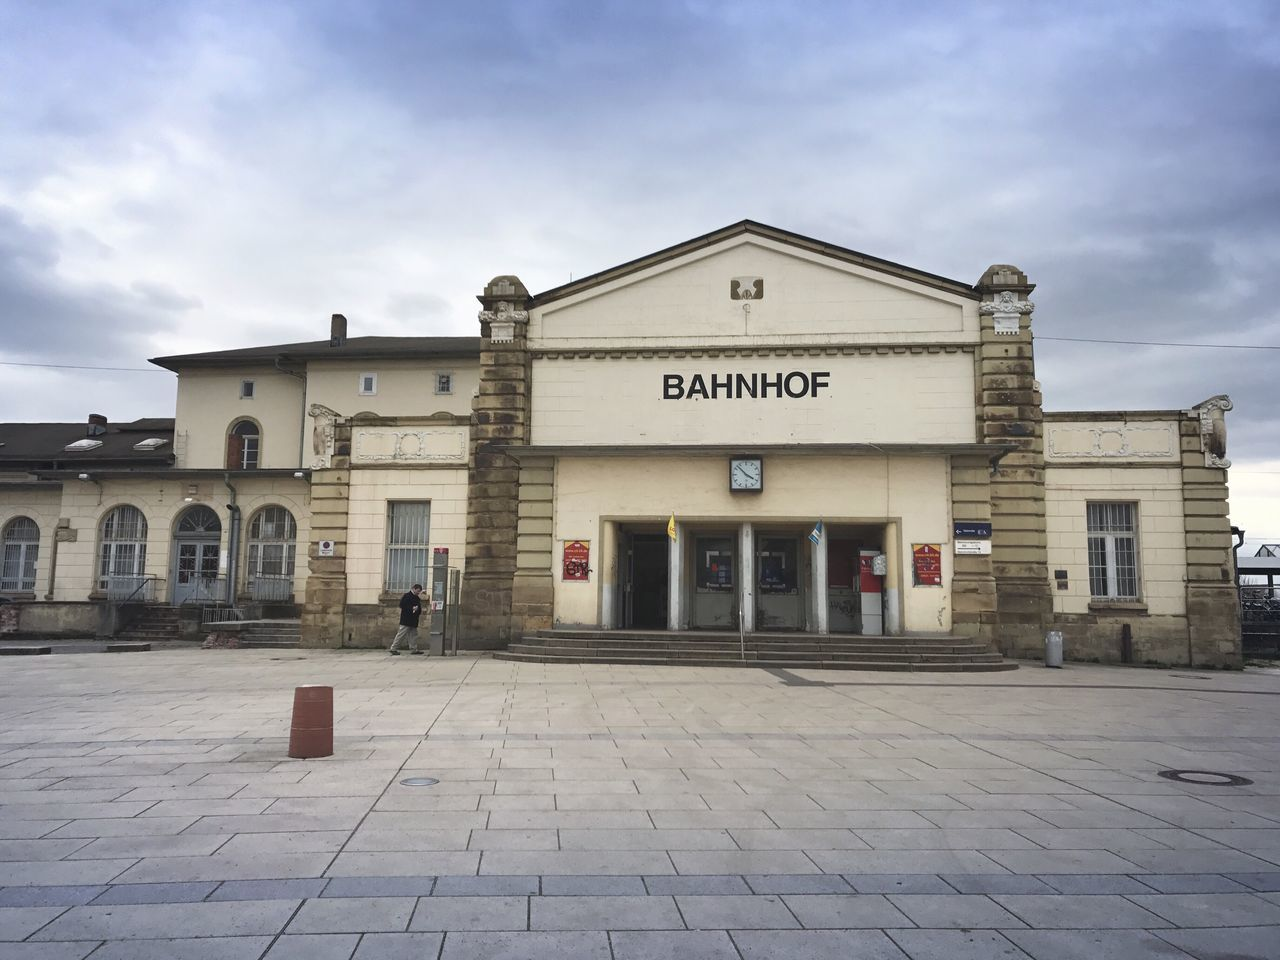 Bahnhof Architecture Built Structure Building Exterior Sky Text Travel Destinations No People Outdoors Day Train Station Urban City Architecture Gotha Sanierung